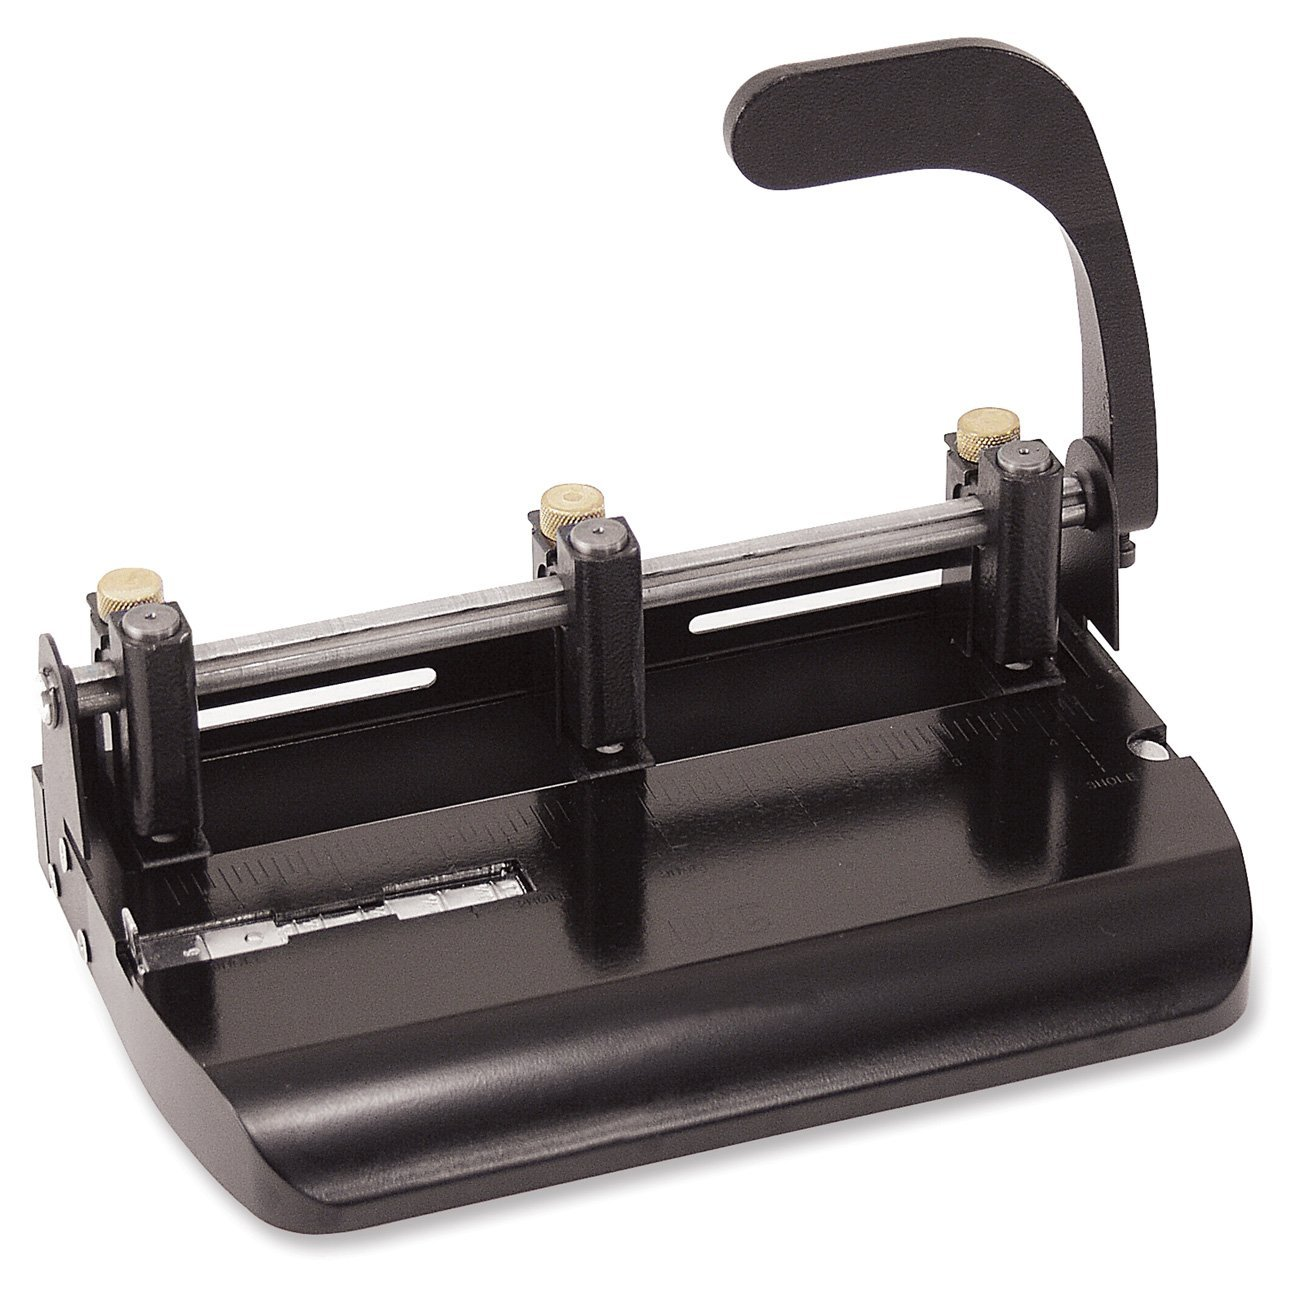 Officemate Adjustable 2 and 3 Hole Punch